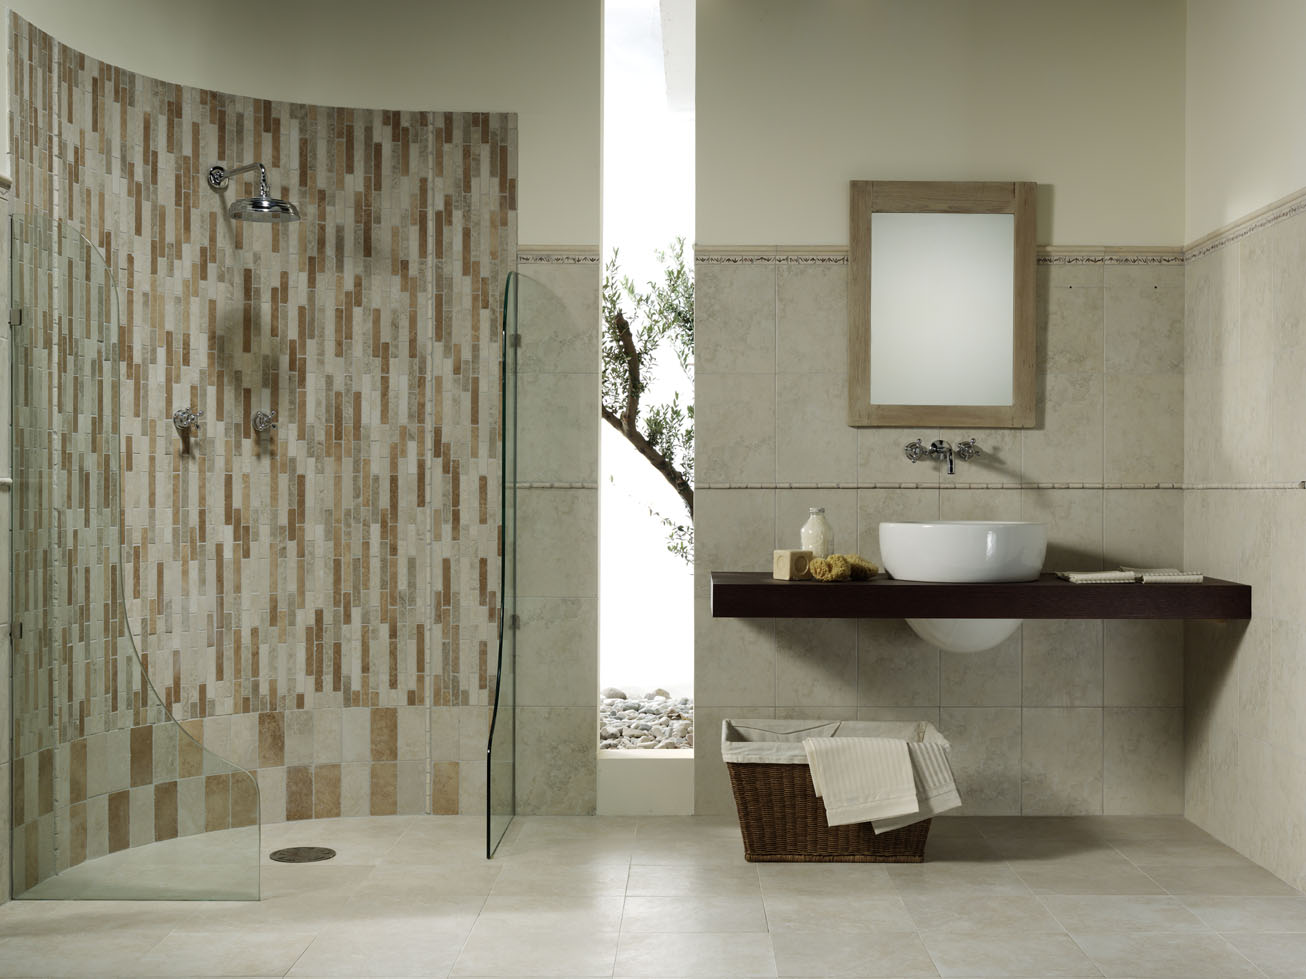 How to maintain porcelain ceramic tile bathrooms dailygadgetfo Choice Image